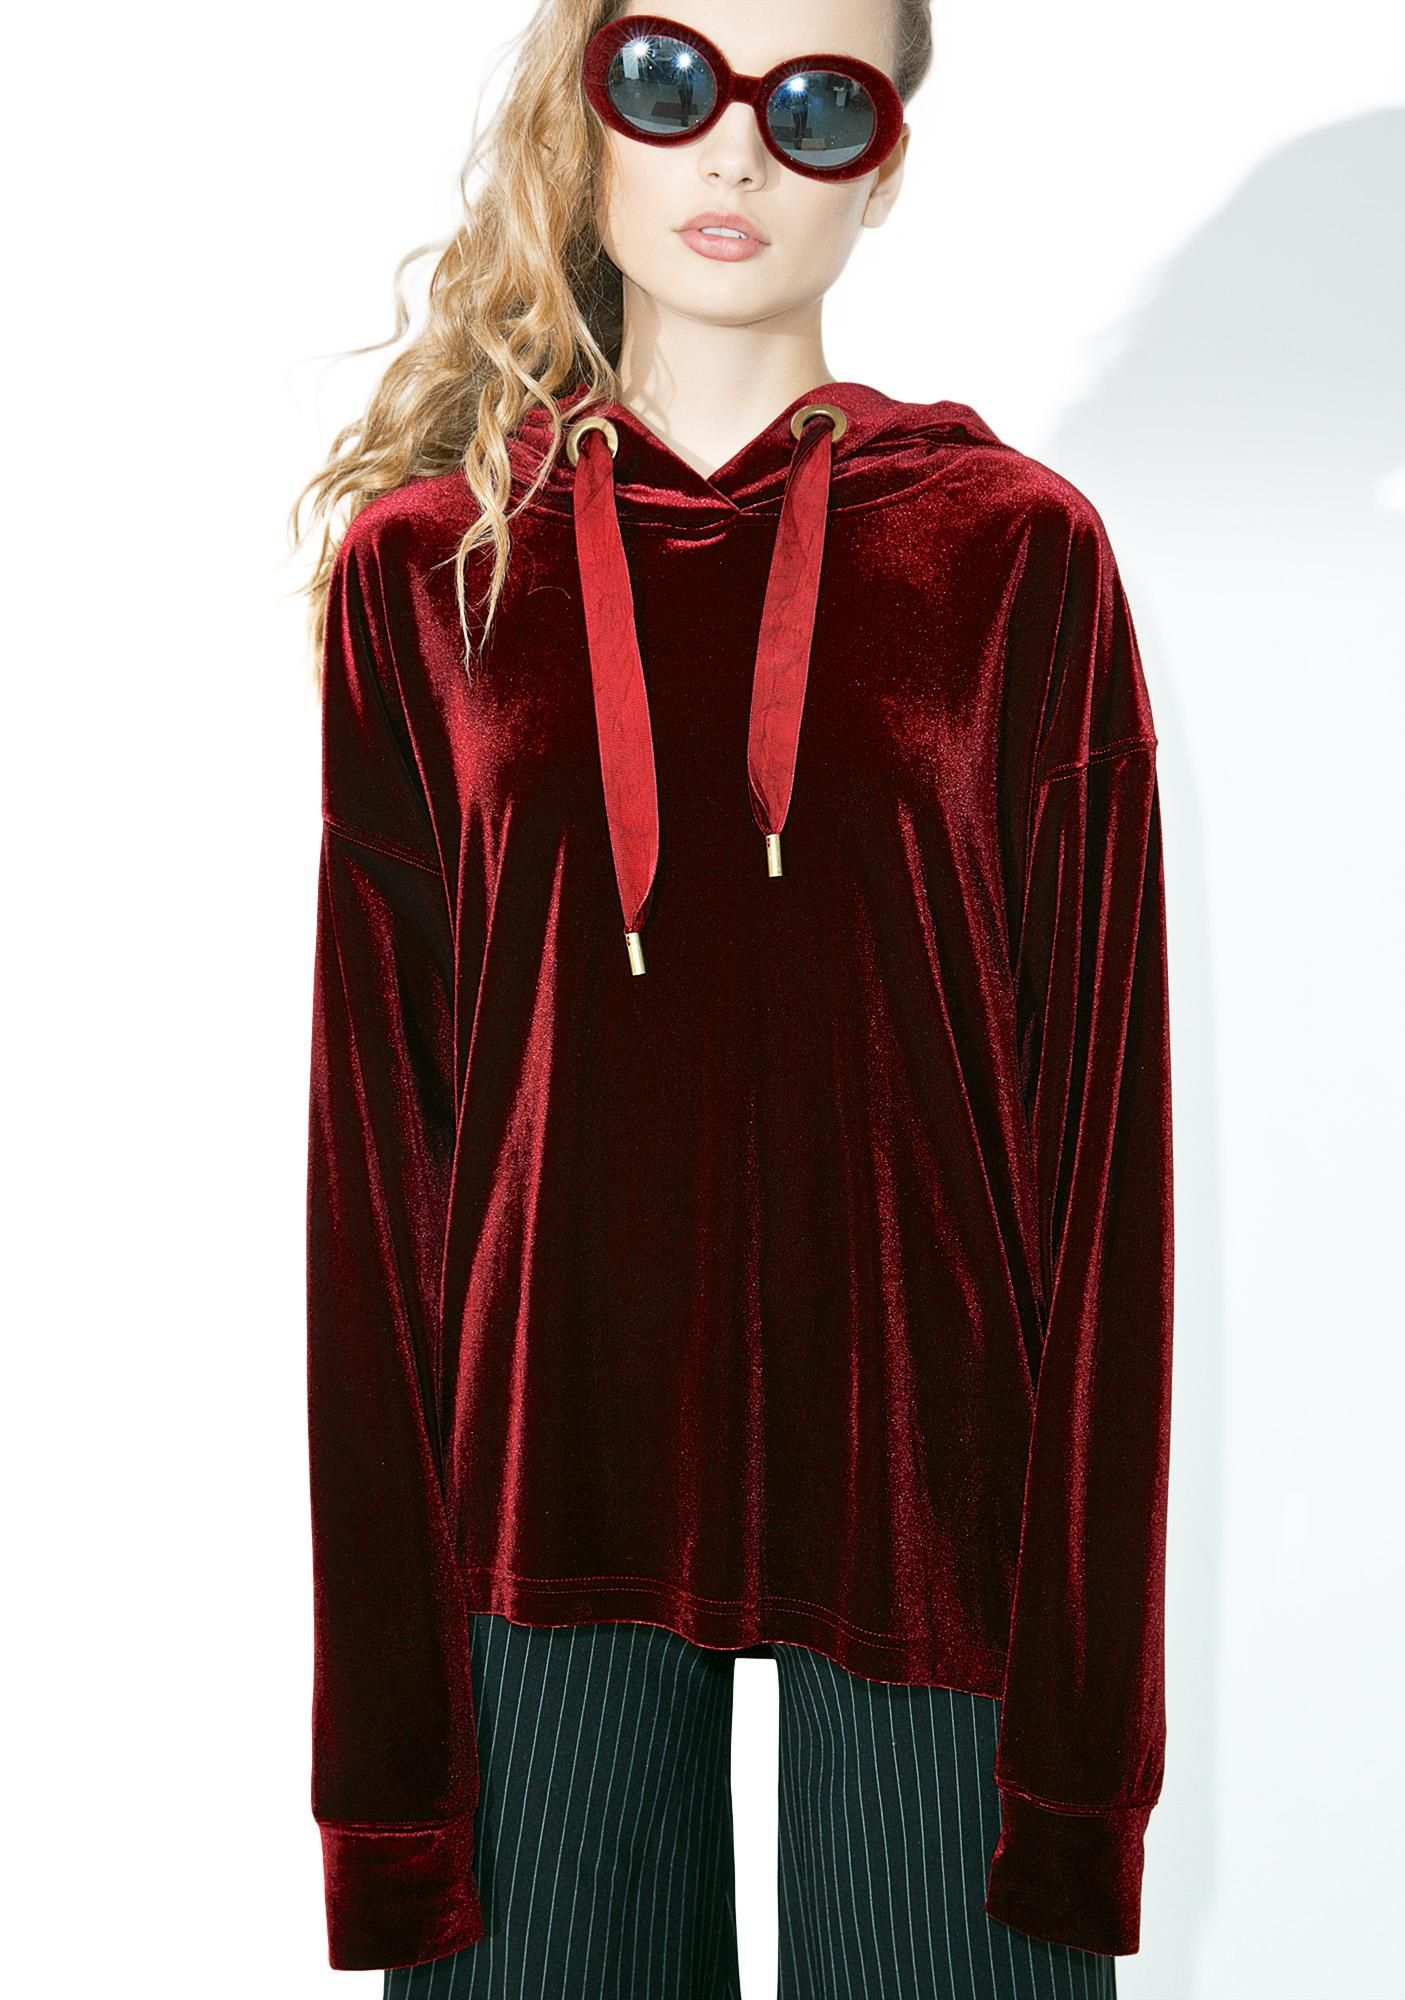 Crimson Claw Velvet Hoodie will strike when they least expect it~ This beautiful pullover features a blood red velvet construction, slouchy fit, banded trim, and oversized drawstring hood.